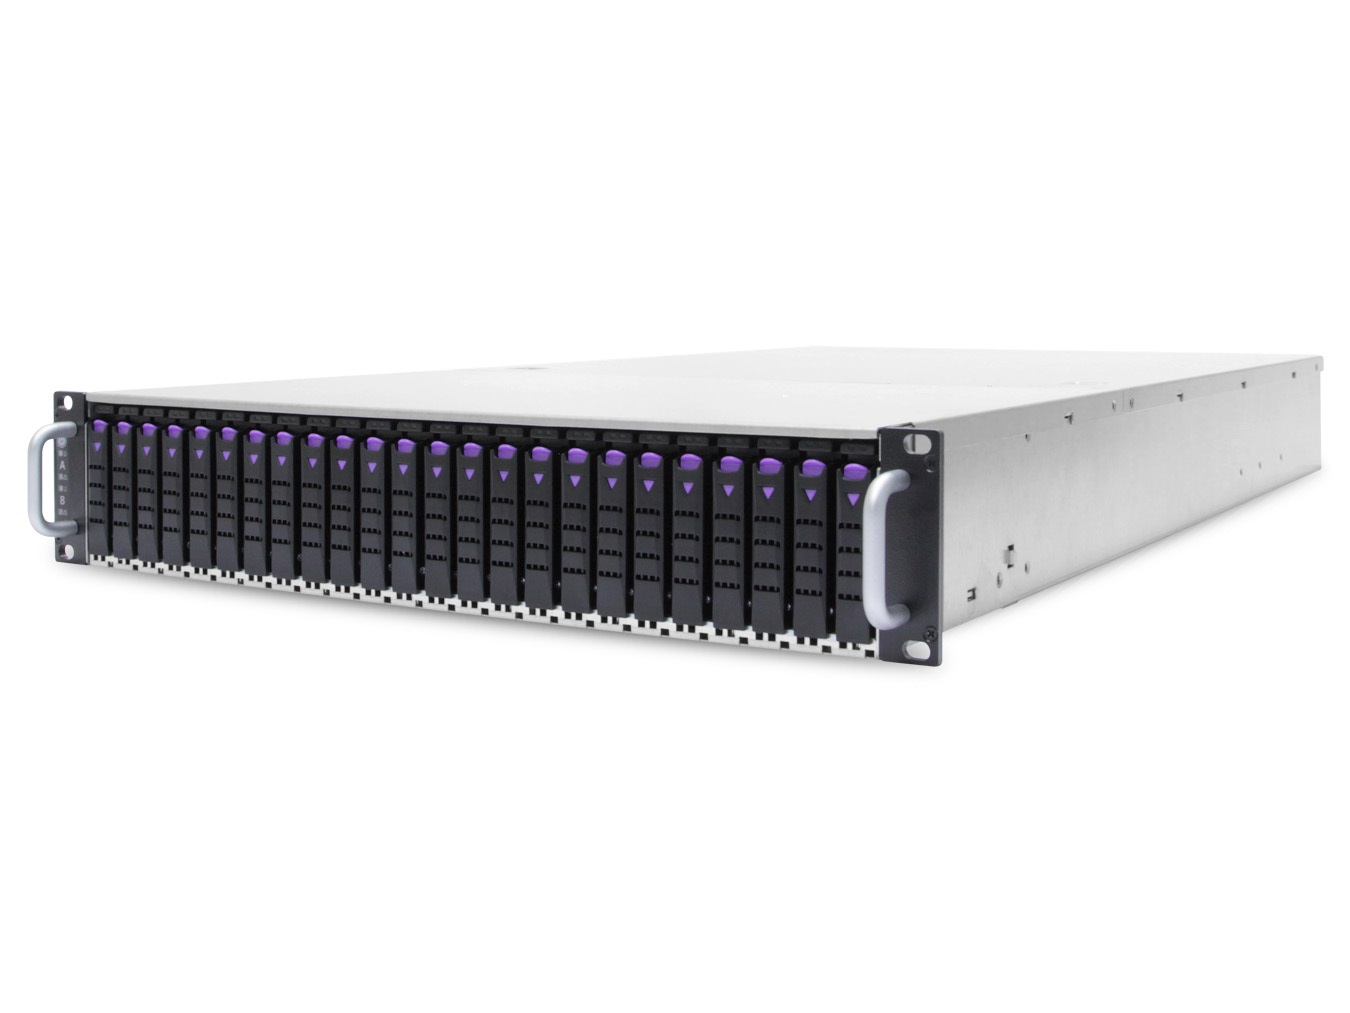 AIC HA202-PH XP1-A202PH04 2U 24-Bay NVMe Storage Server